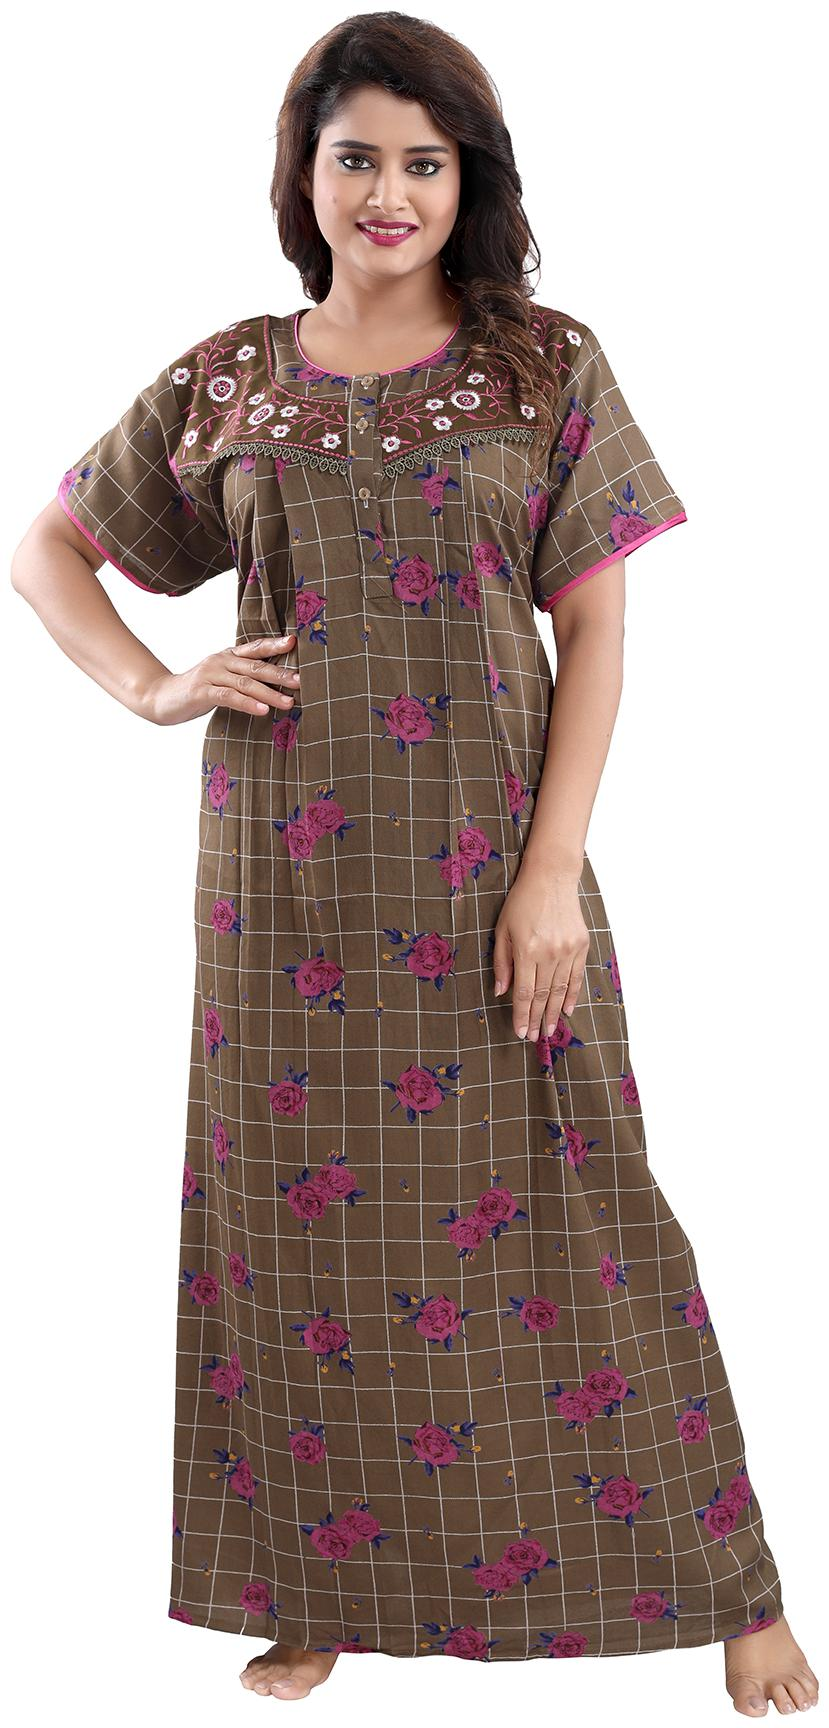 https://assetscdn1.paytm.com/images/catalog/product/A/AP/APPBE-YOU-WOMENBE-Y2313157853F2D/1614085134554_0..jpg